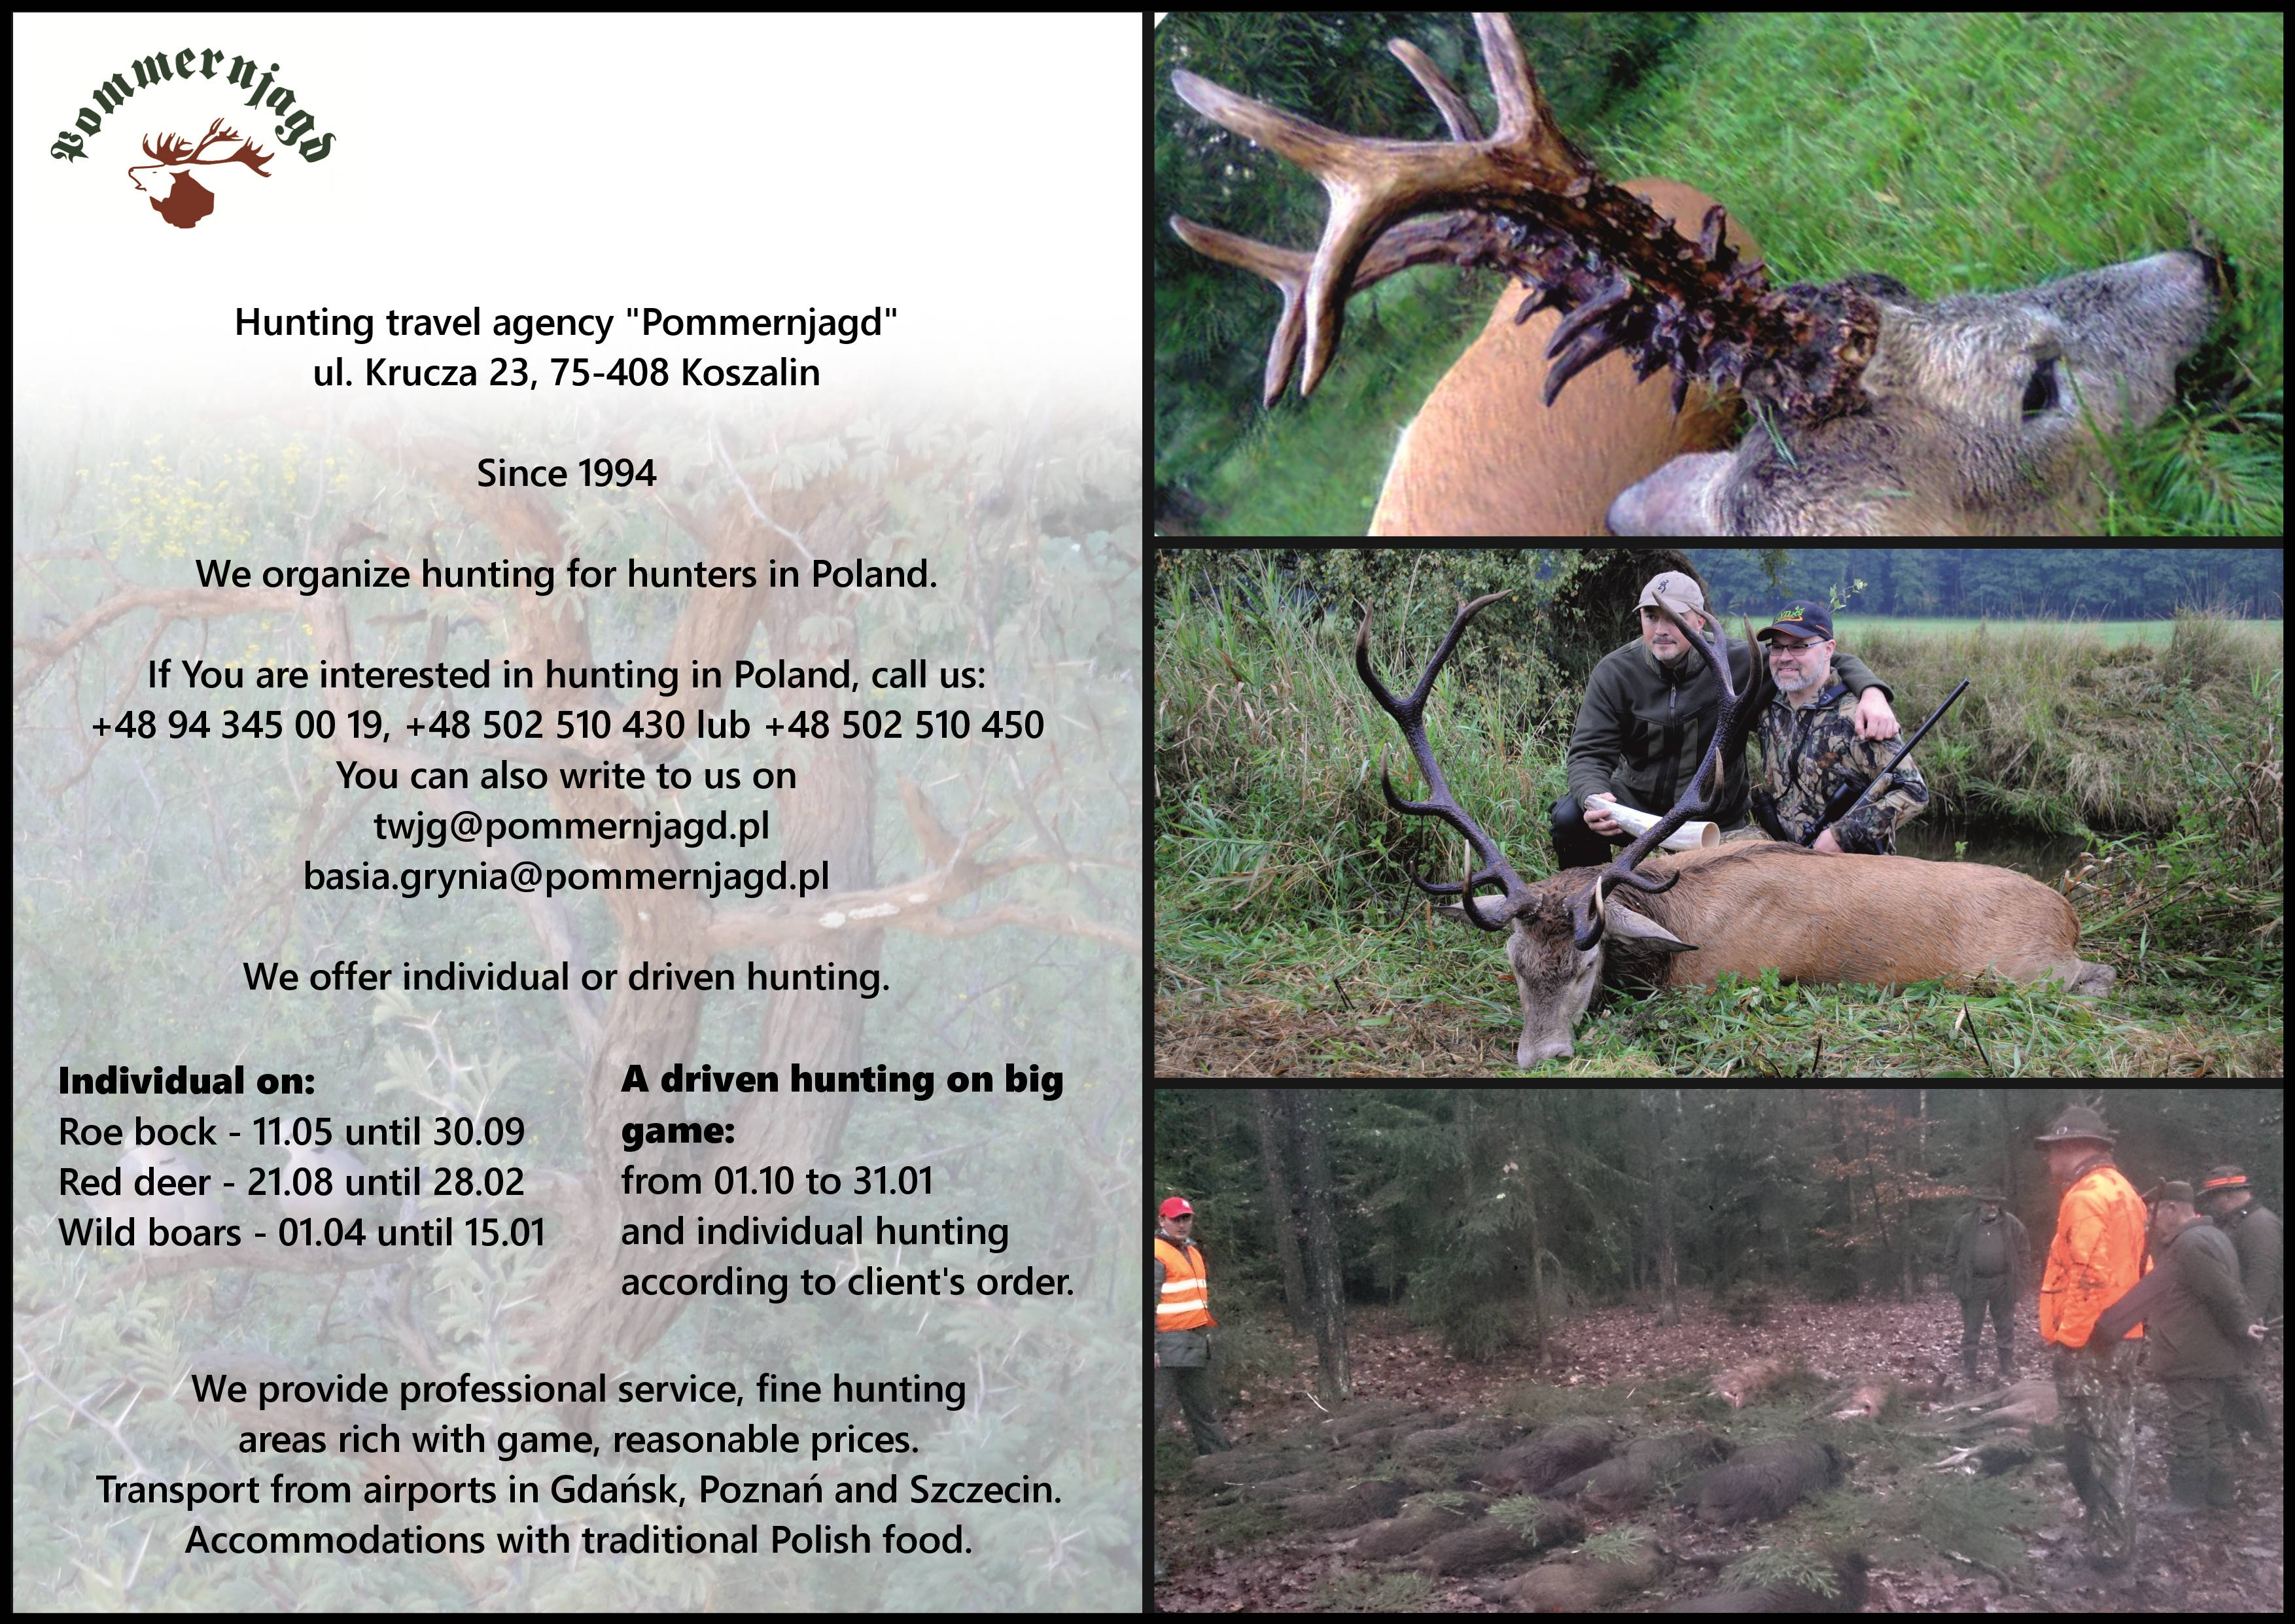 Leaflet - hunting for hunters in Poland.